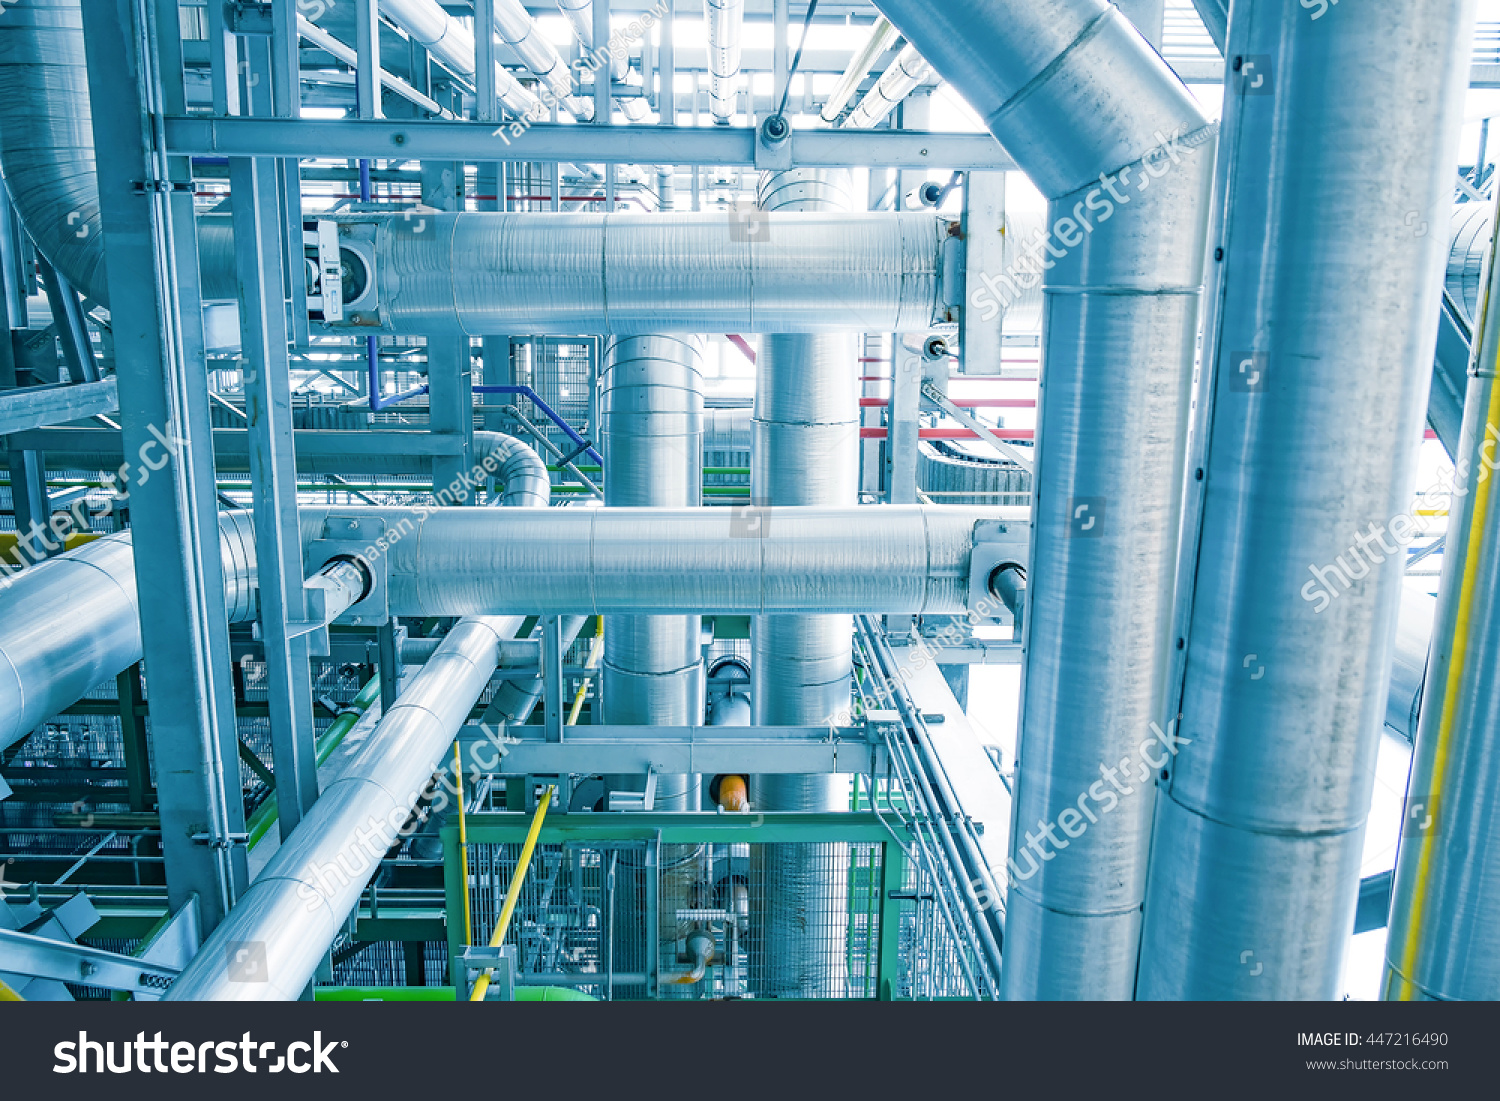 Steam Piping Thermal Insulation Boiler Power Stock Photo (Edit Now ...